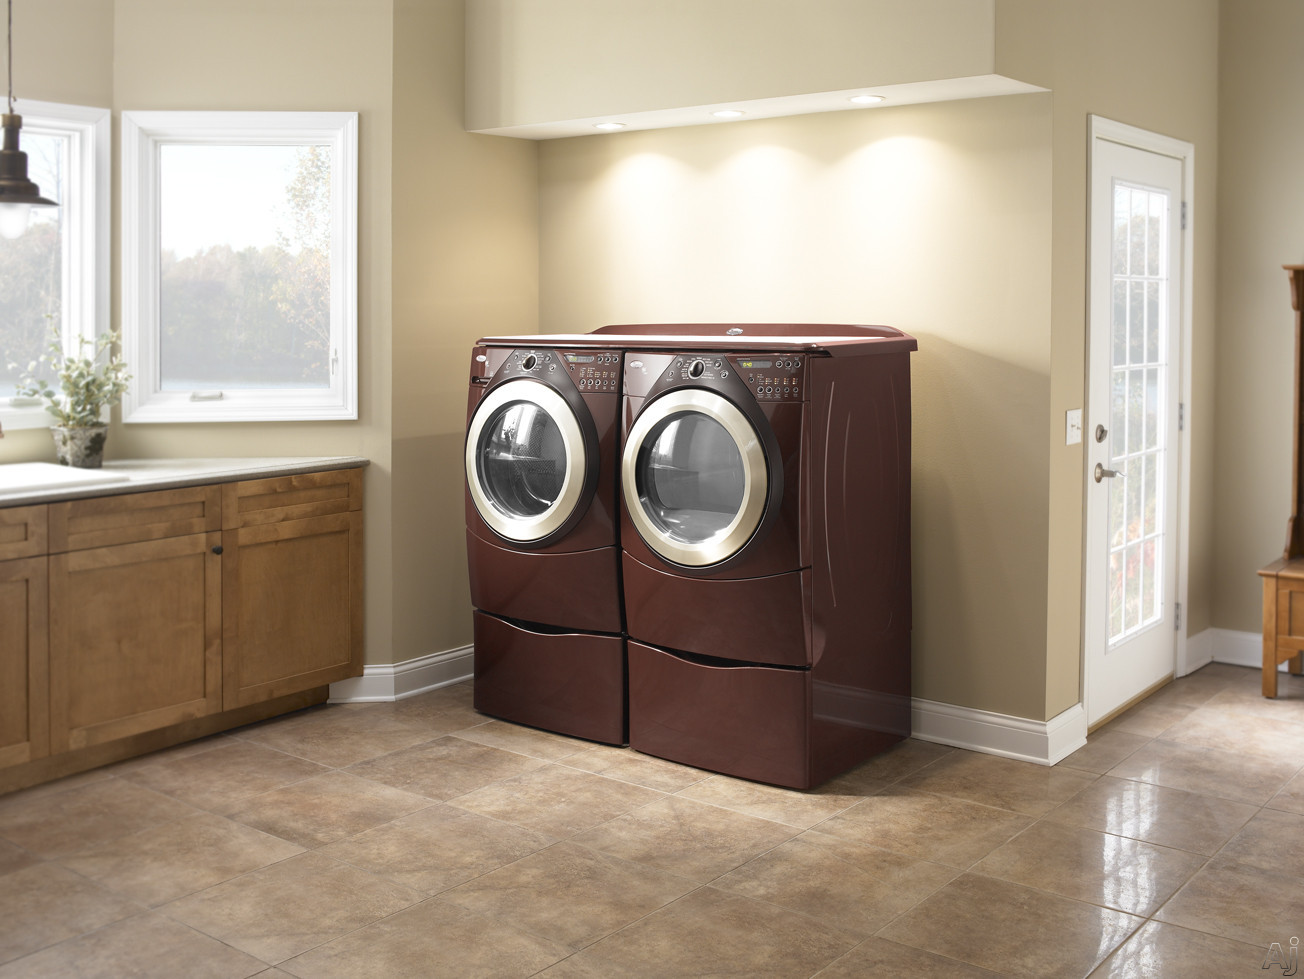 Whirlpool Wgd9500tc 27 Quot Gas Steam Dryer With 7 0 Cu Ft